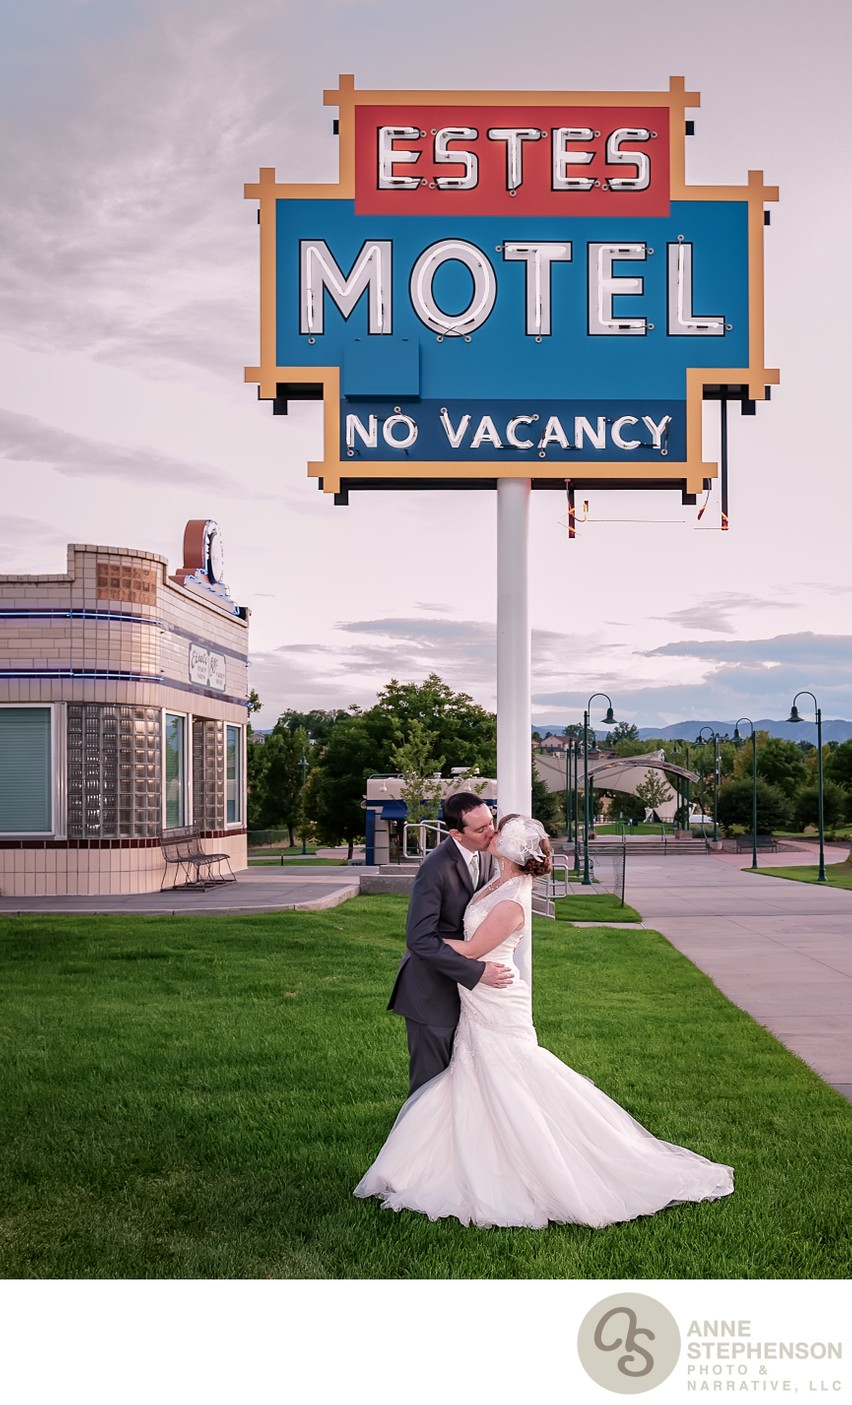 Bride and groom kiss in front of historic motel sign